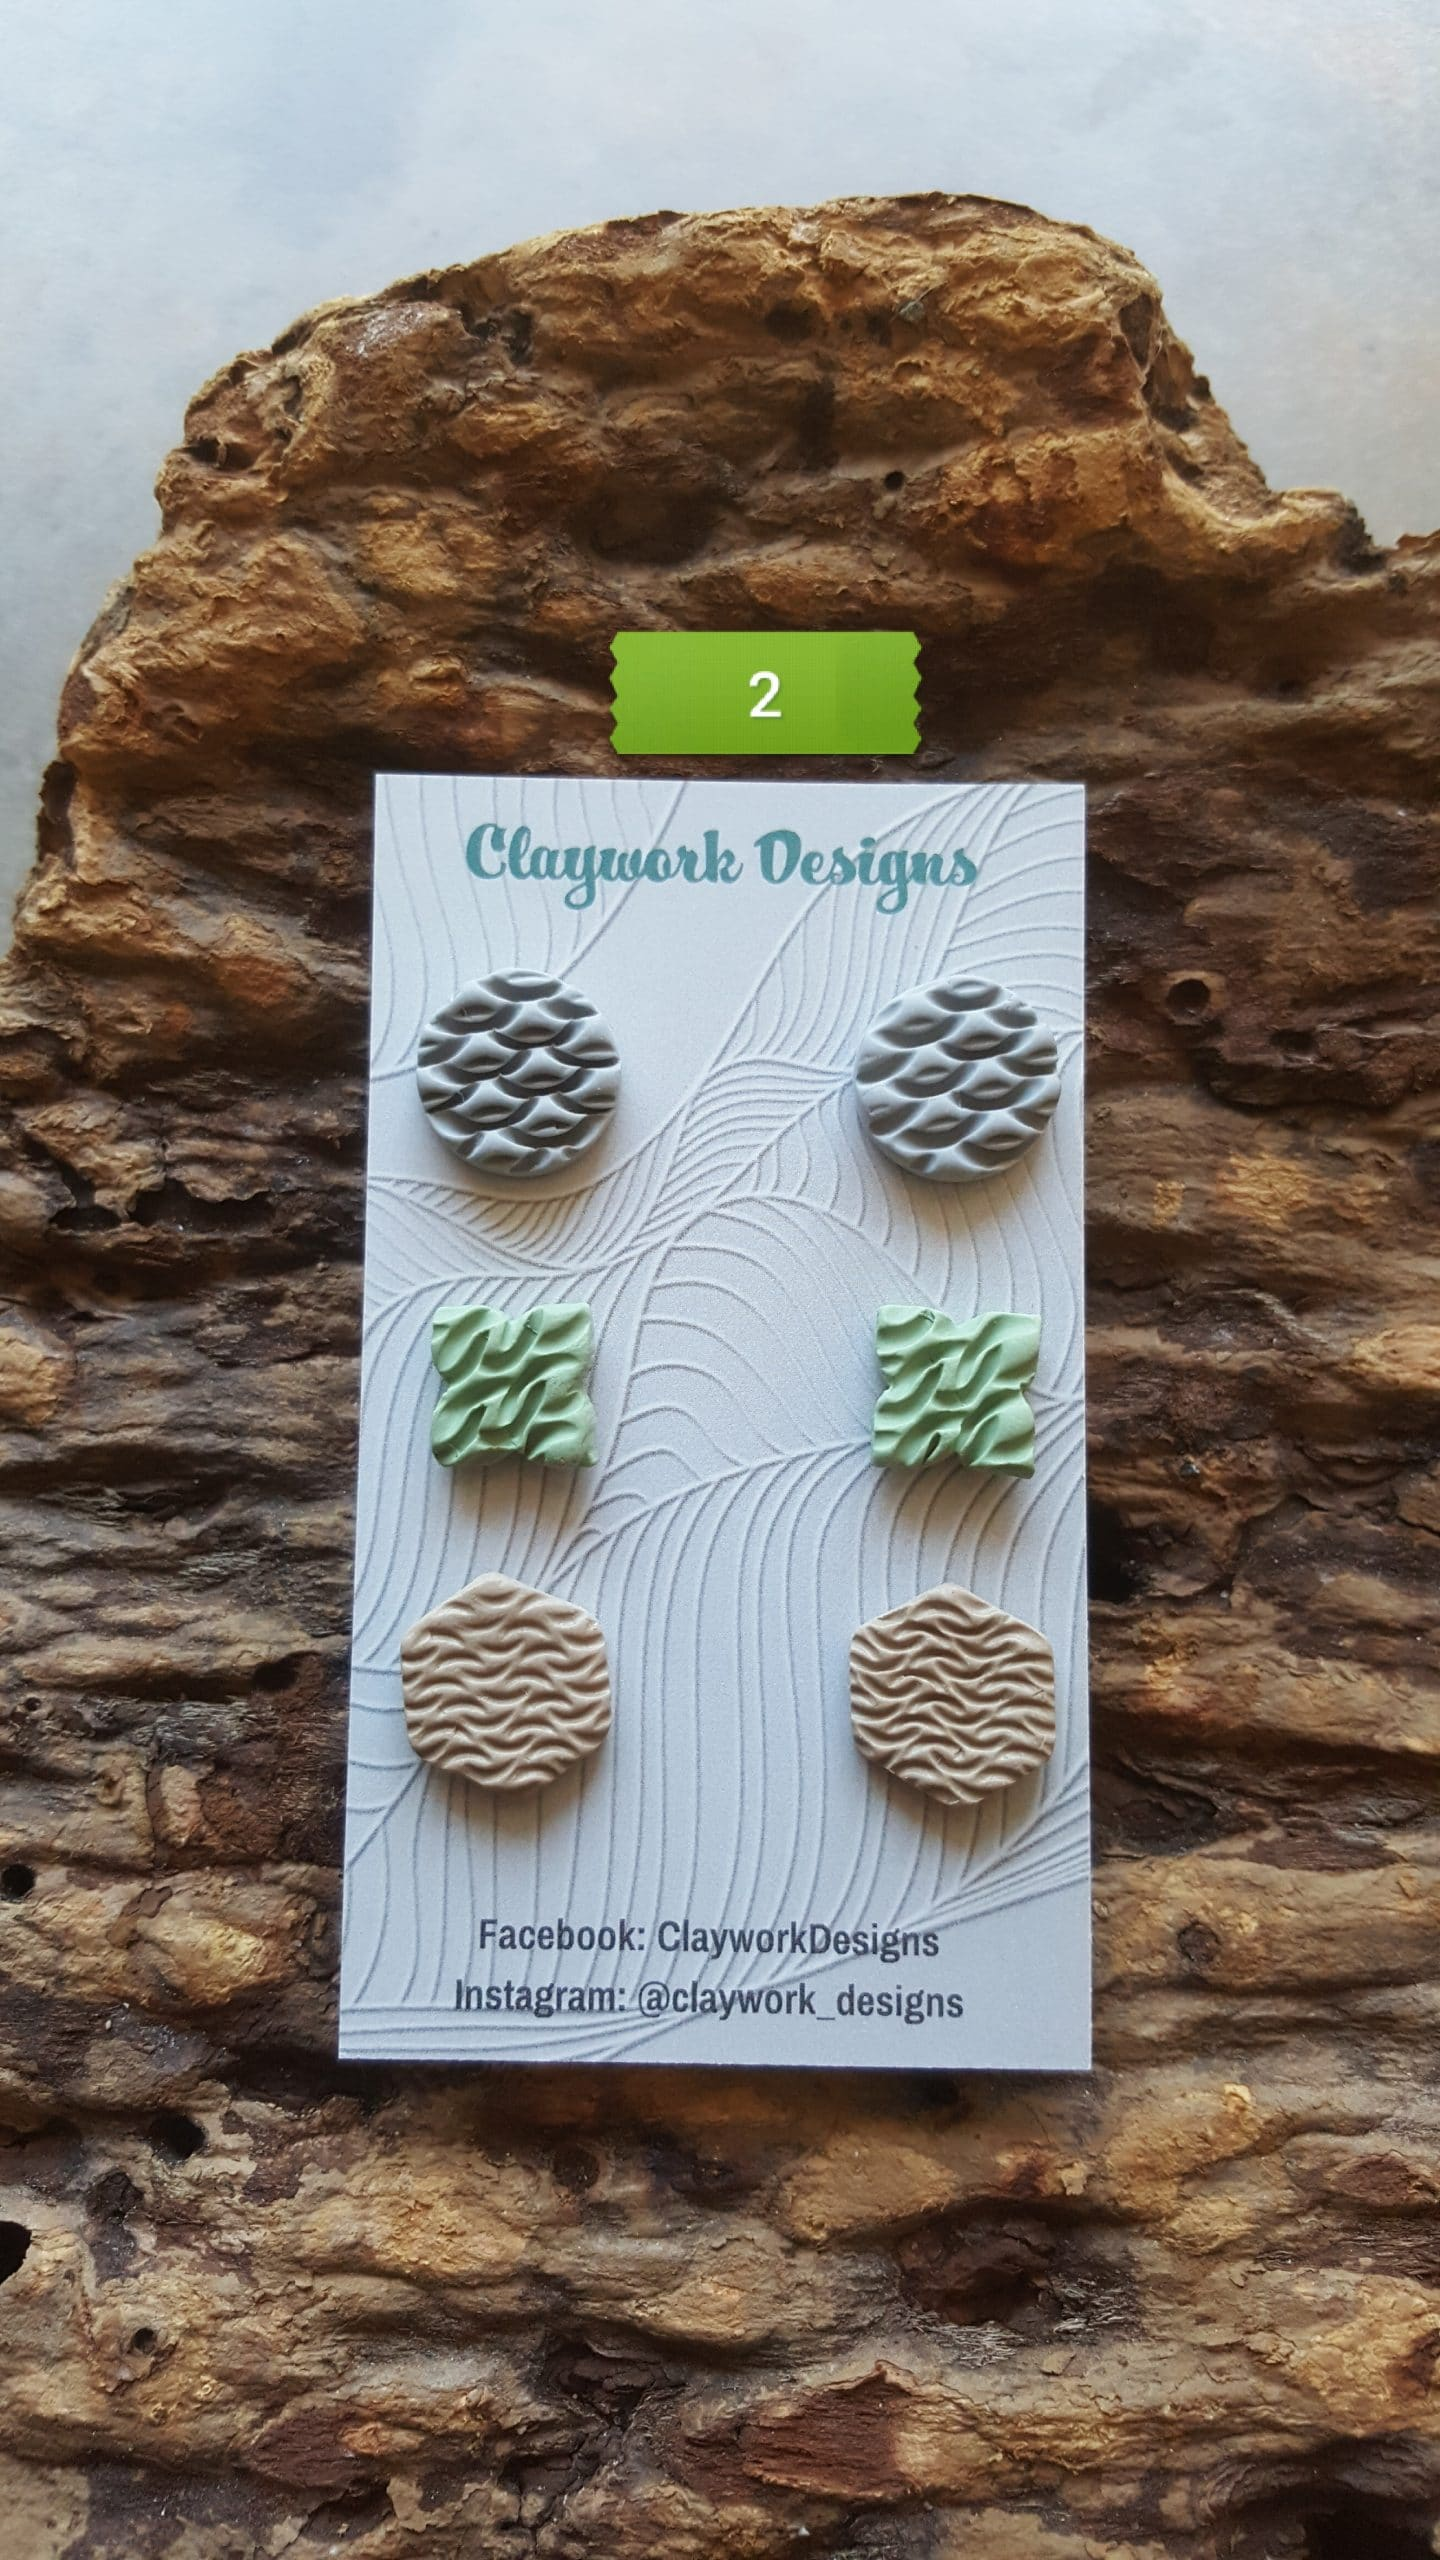 Wirework Designs | Handcrafted chainmaille jewellery and chainmaille products | Chainmaille Weave Stud Earring - 3 Packs | 20210620_172034